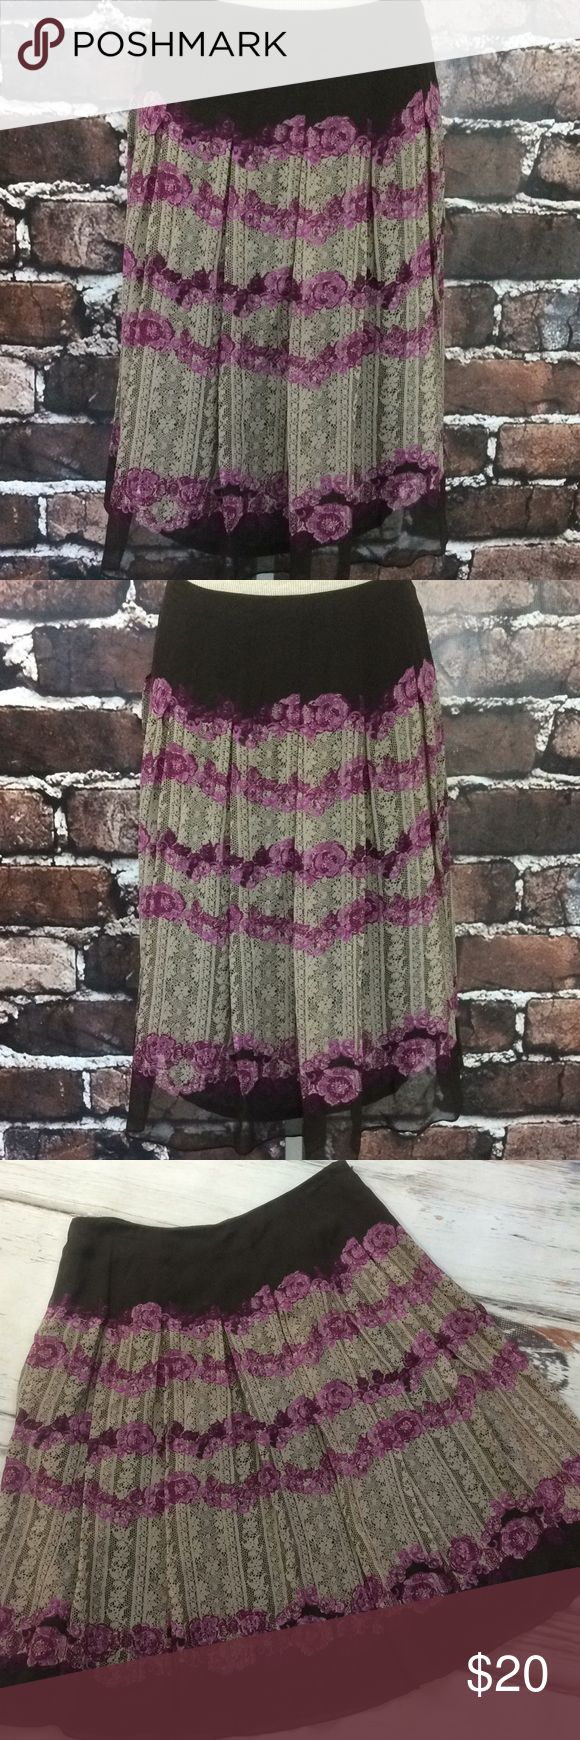 "Anne Klein brown purple floral pleated silk skirt Gorgeous skirt. Flowing with pleats. Brown with pinky purple magenta flowers and cream lace design. Anne Klein. Women's skirt size 4. Full and pleated. 100% silk. Lined. Waist 29"" Length 24.5"" Anne Klein Skirts A-Line or Full"